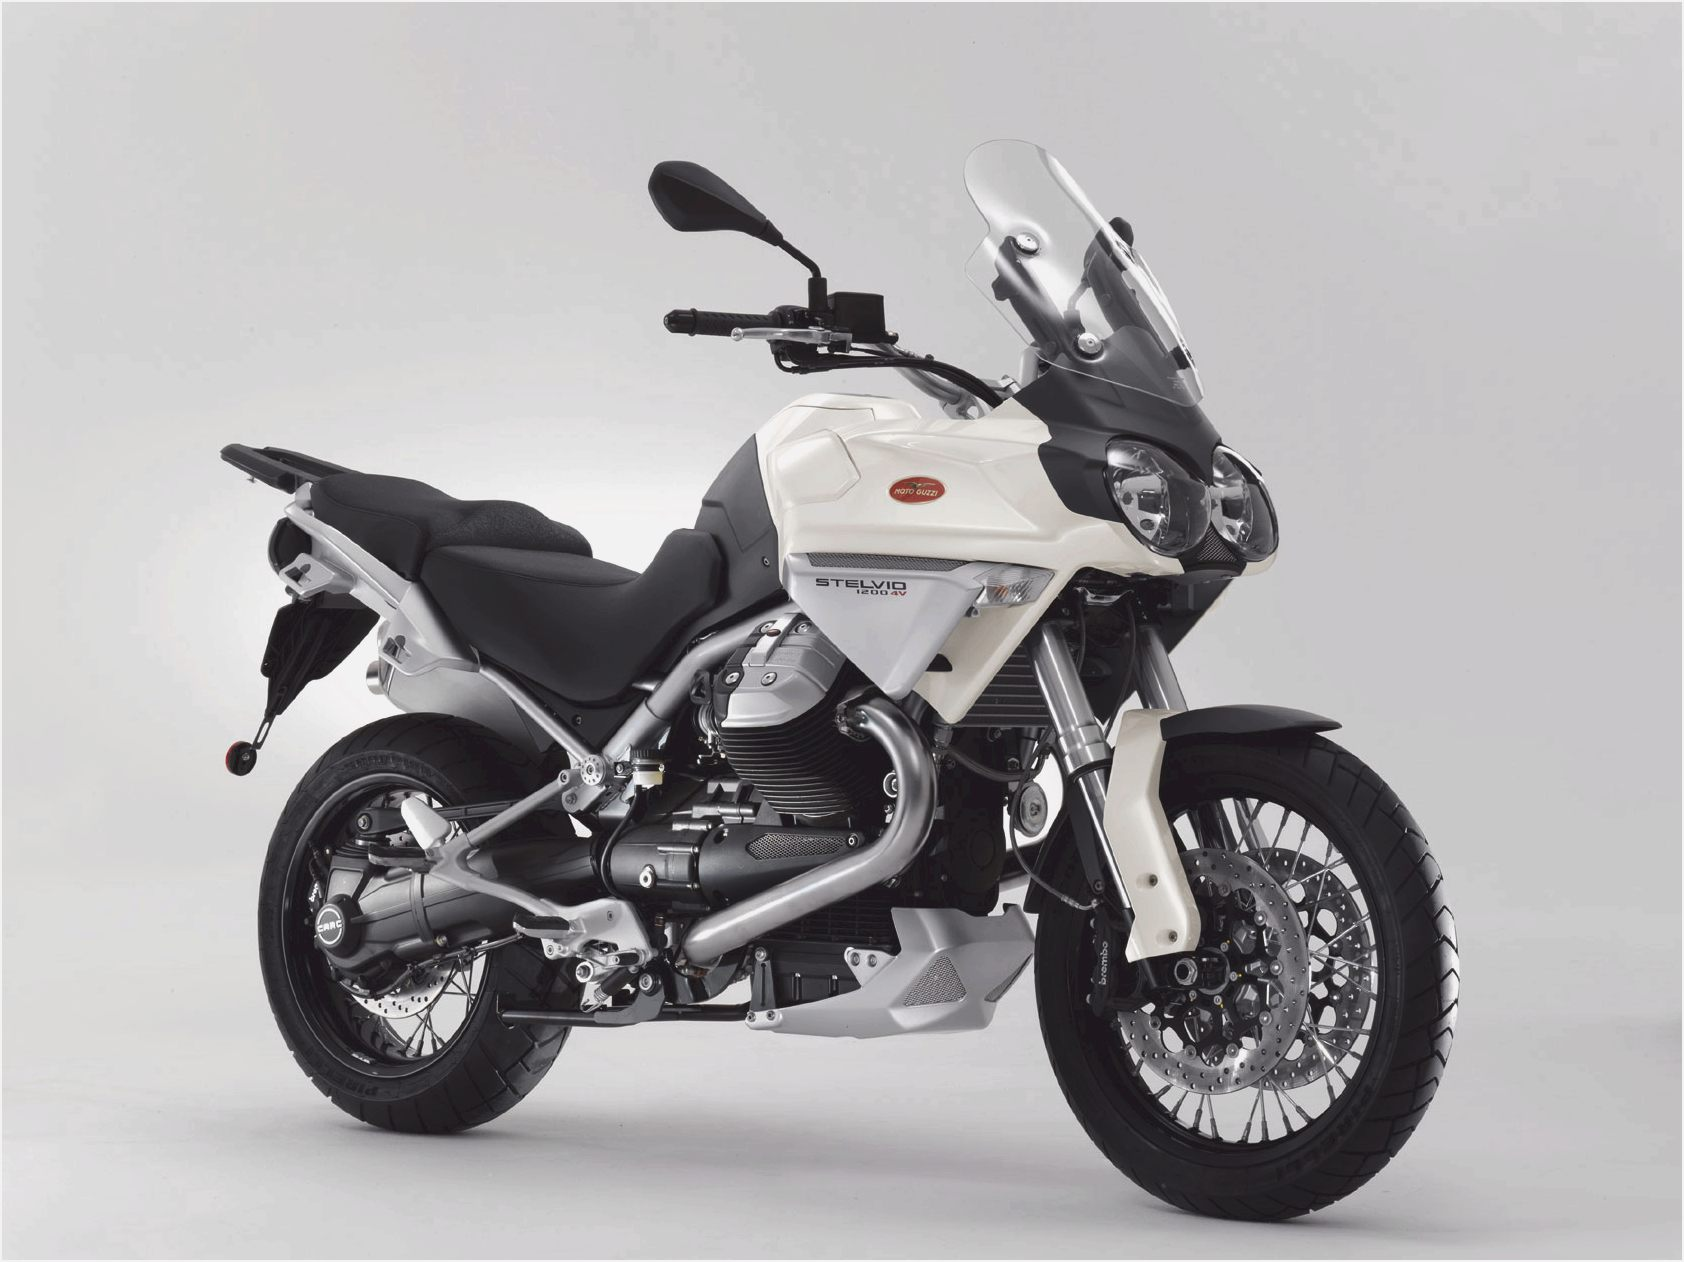 BMW R1200GS images #8008